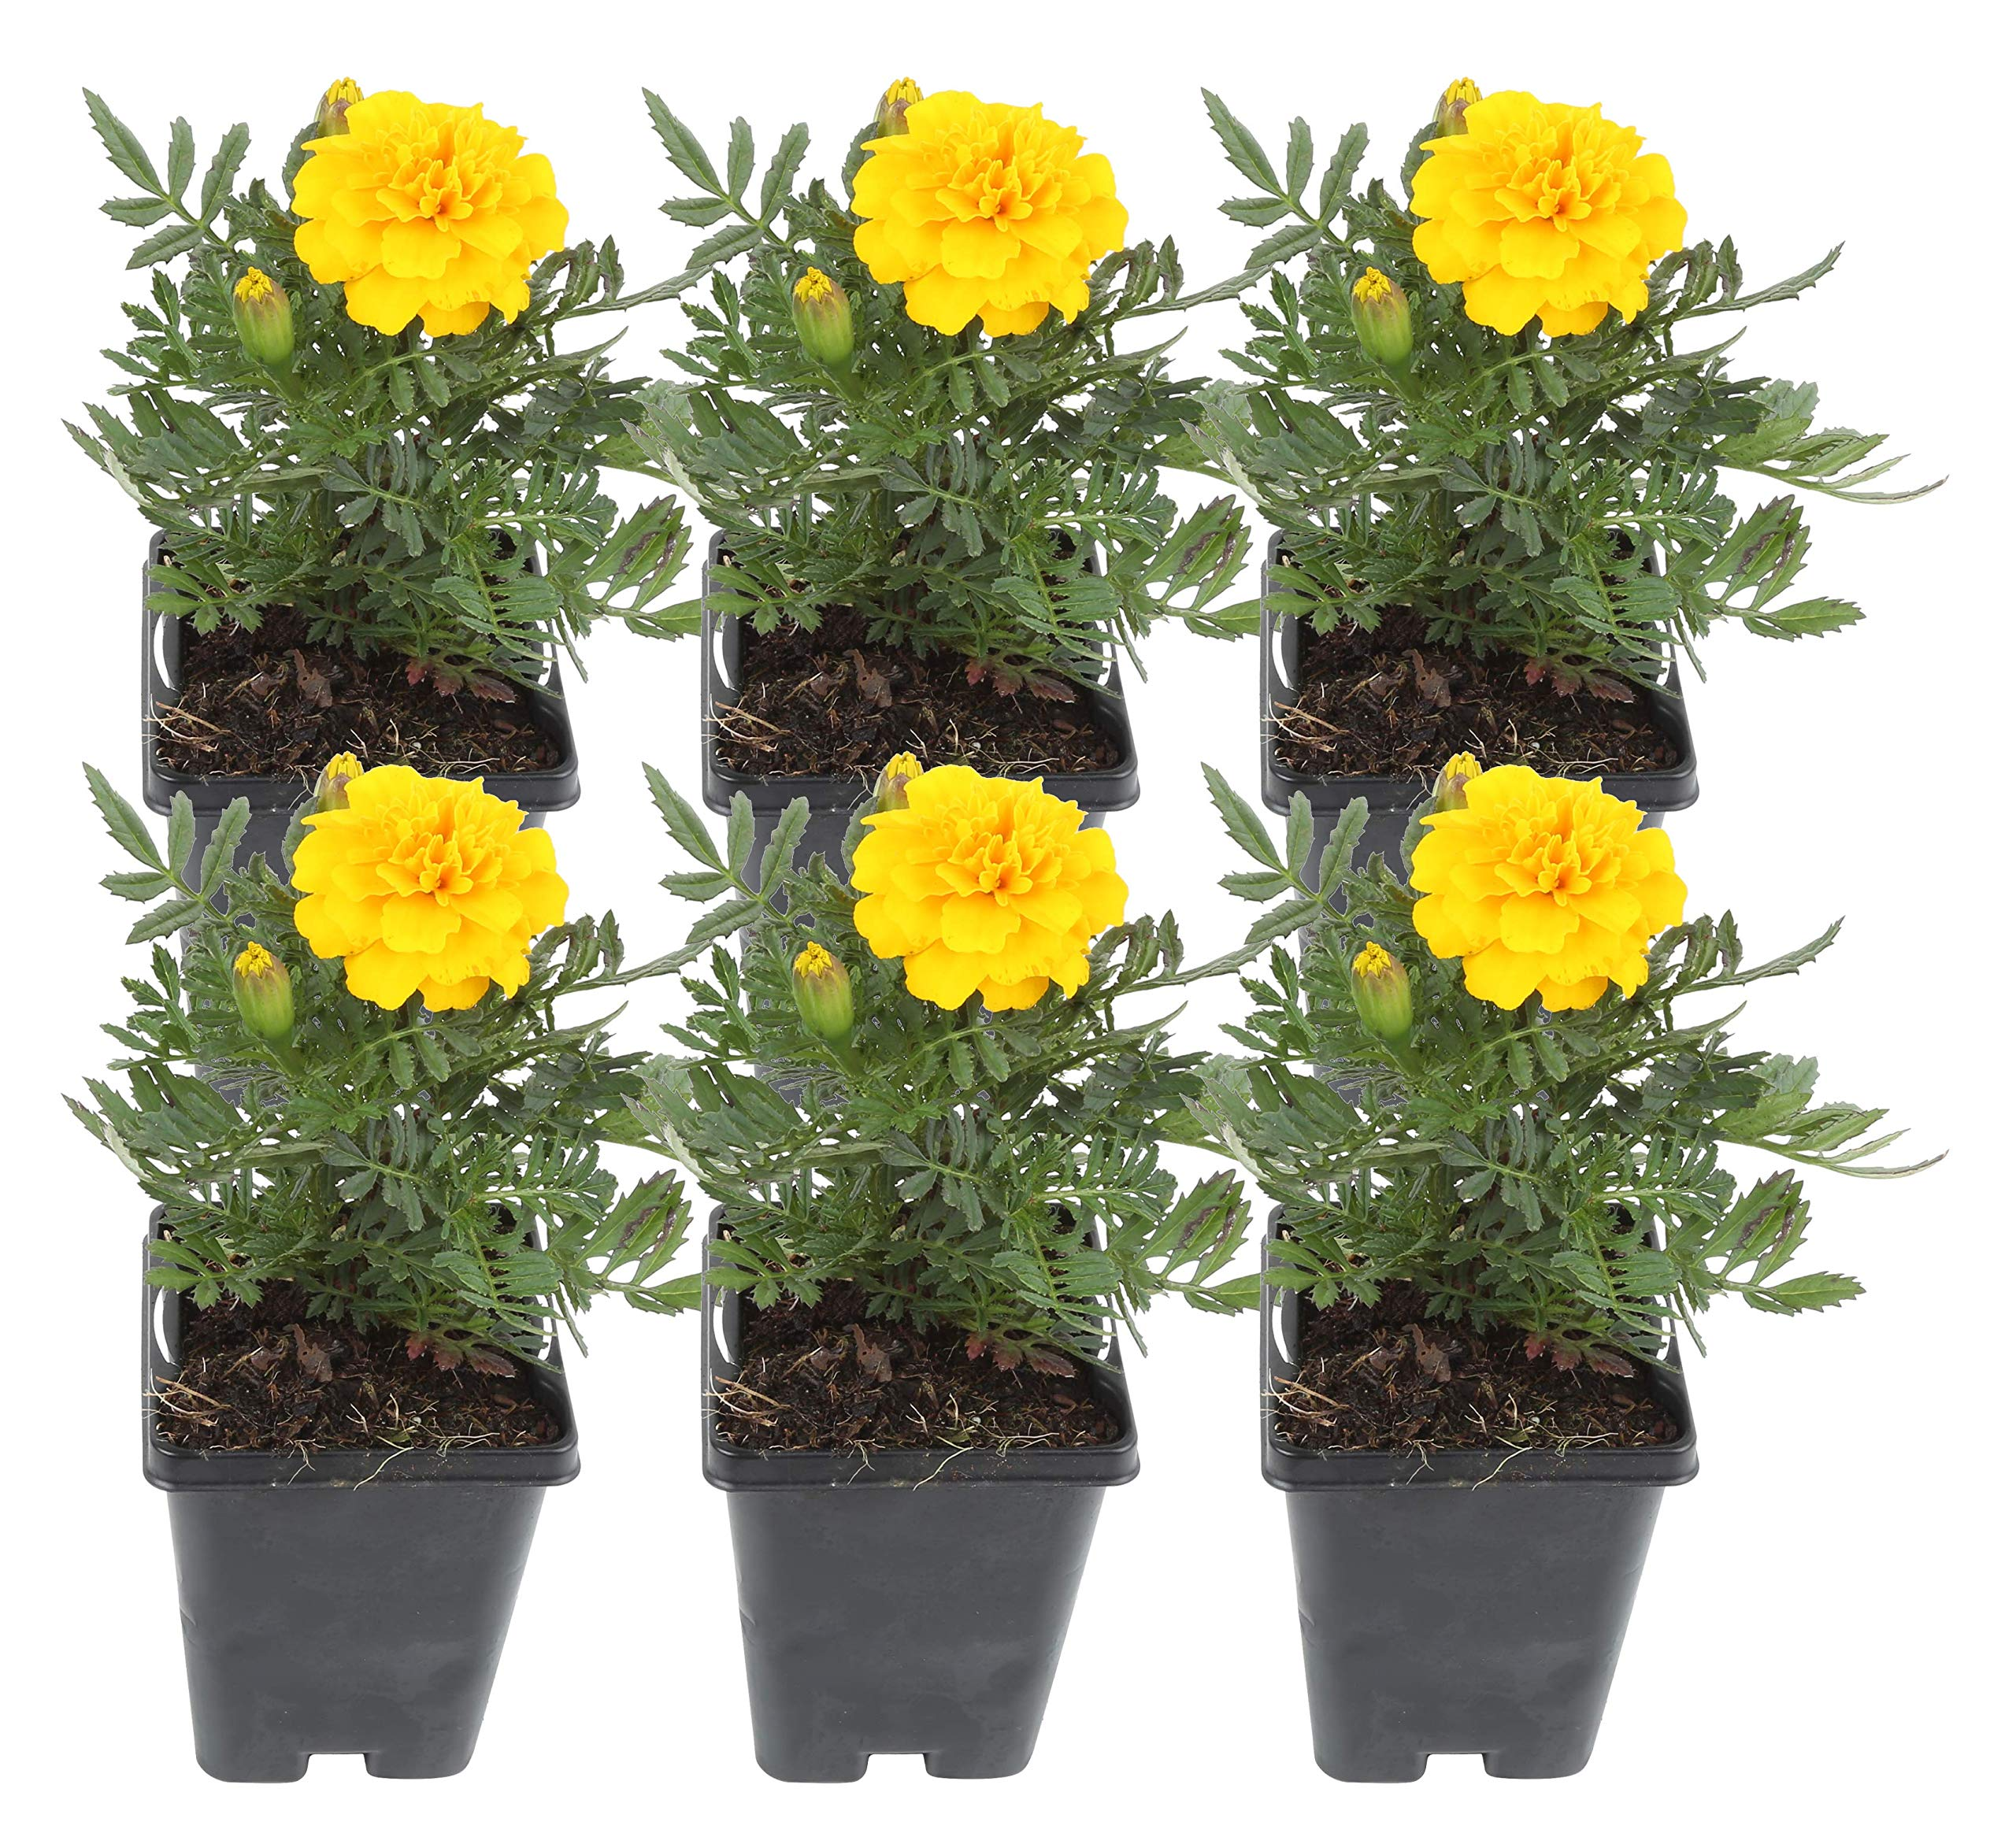 Costa Farms Marigold Live Outdoor Plant 1 PT Grower's Pot, 6-Pack, Yellow